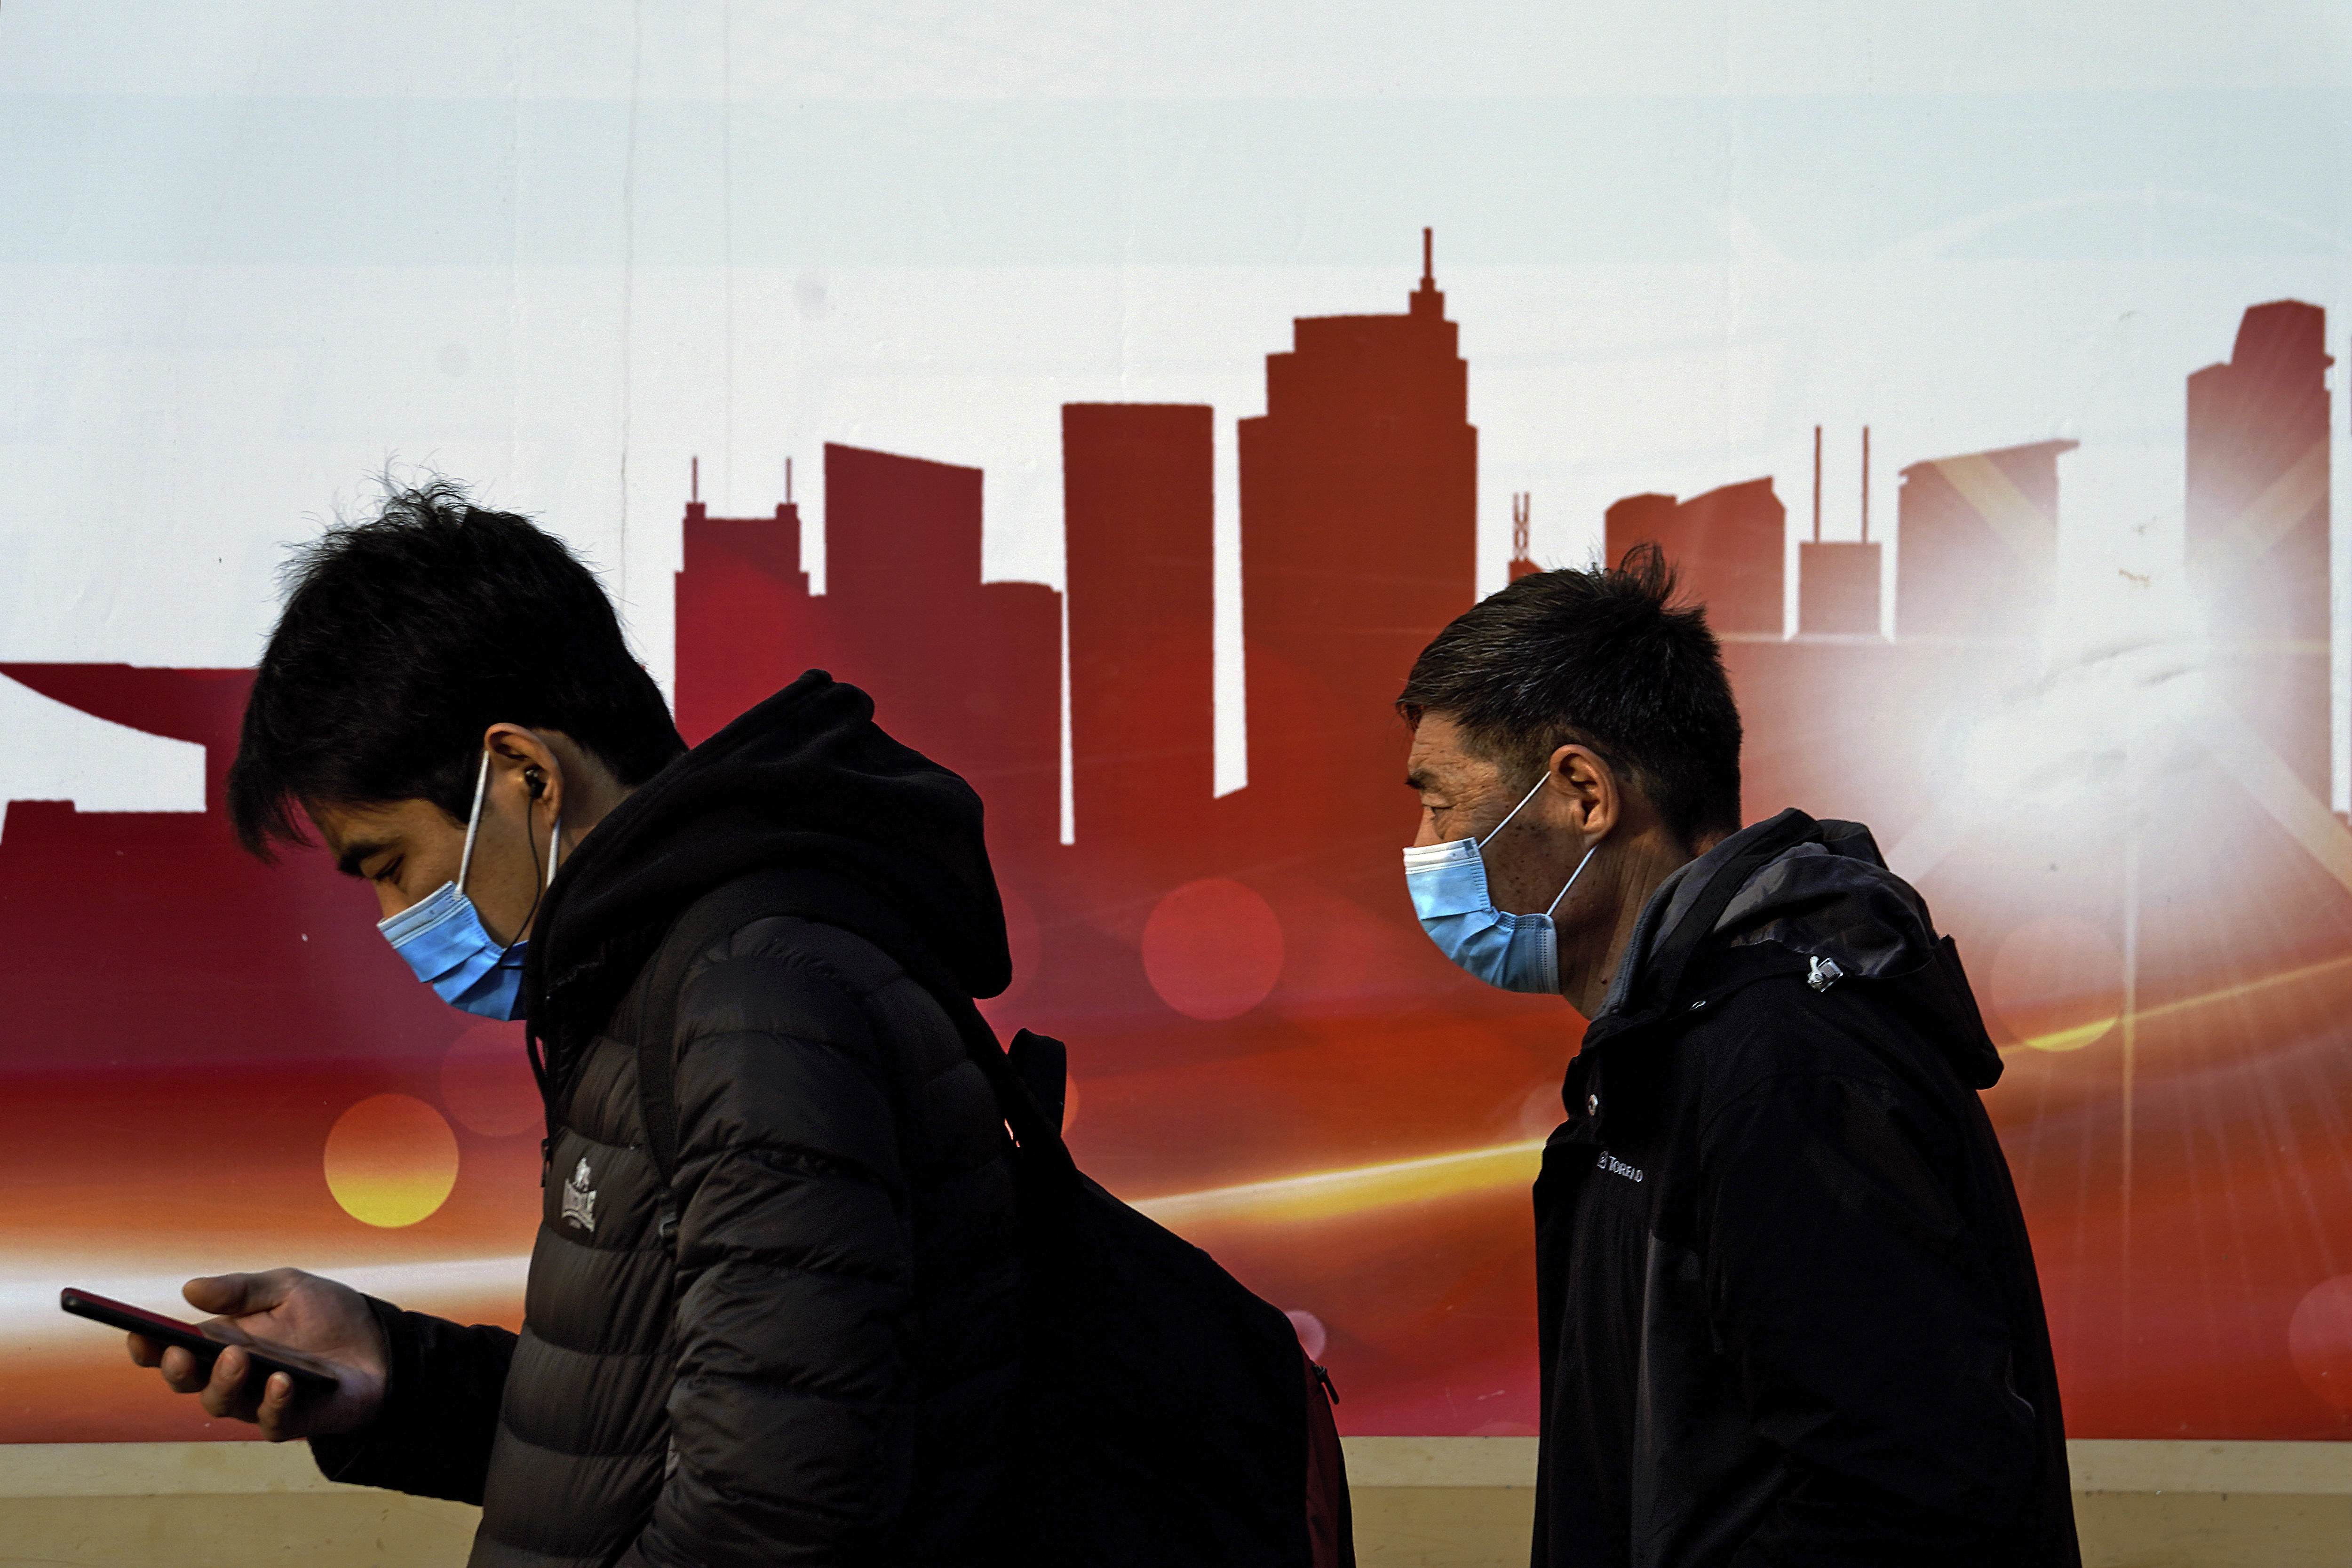 People wearing face masks to help curb the spread of the coronavirus walk by a moral depicting China's skyscrapers along a street in Beijing, Sunday, Dec. 6, 2020. Provincial governments across China are placing orders for experimental, domestically made coronavirus vaccines, though health officials have yet to say how well they work or how they may reach the country's 1.4 billion people. Photo: AP